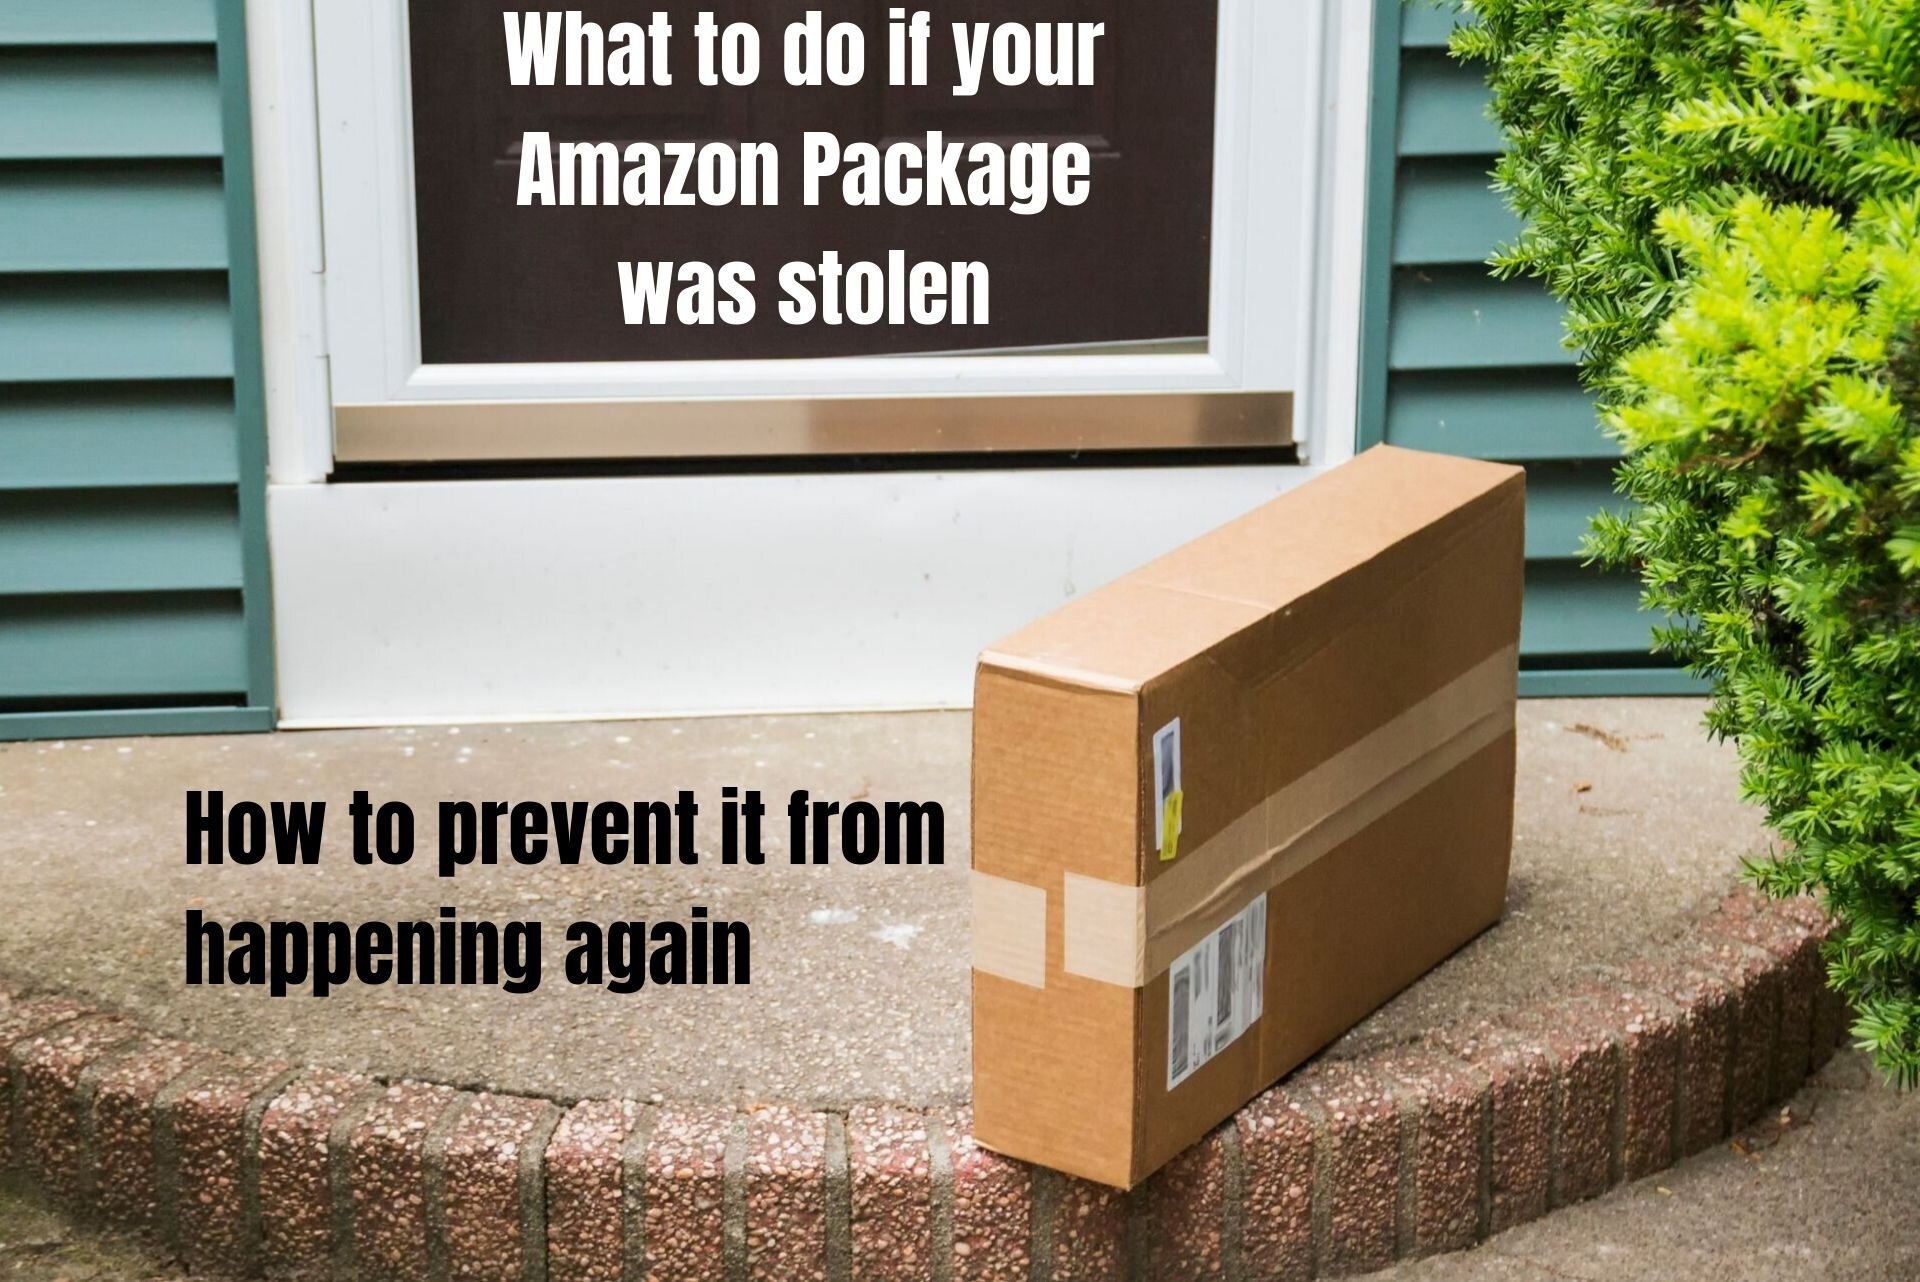 Amazon Package Stolen? Learn what to do and how to prevent your Amazon packages from being stolen.